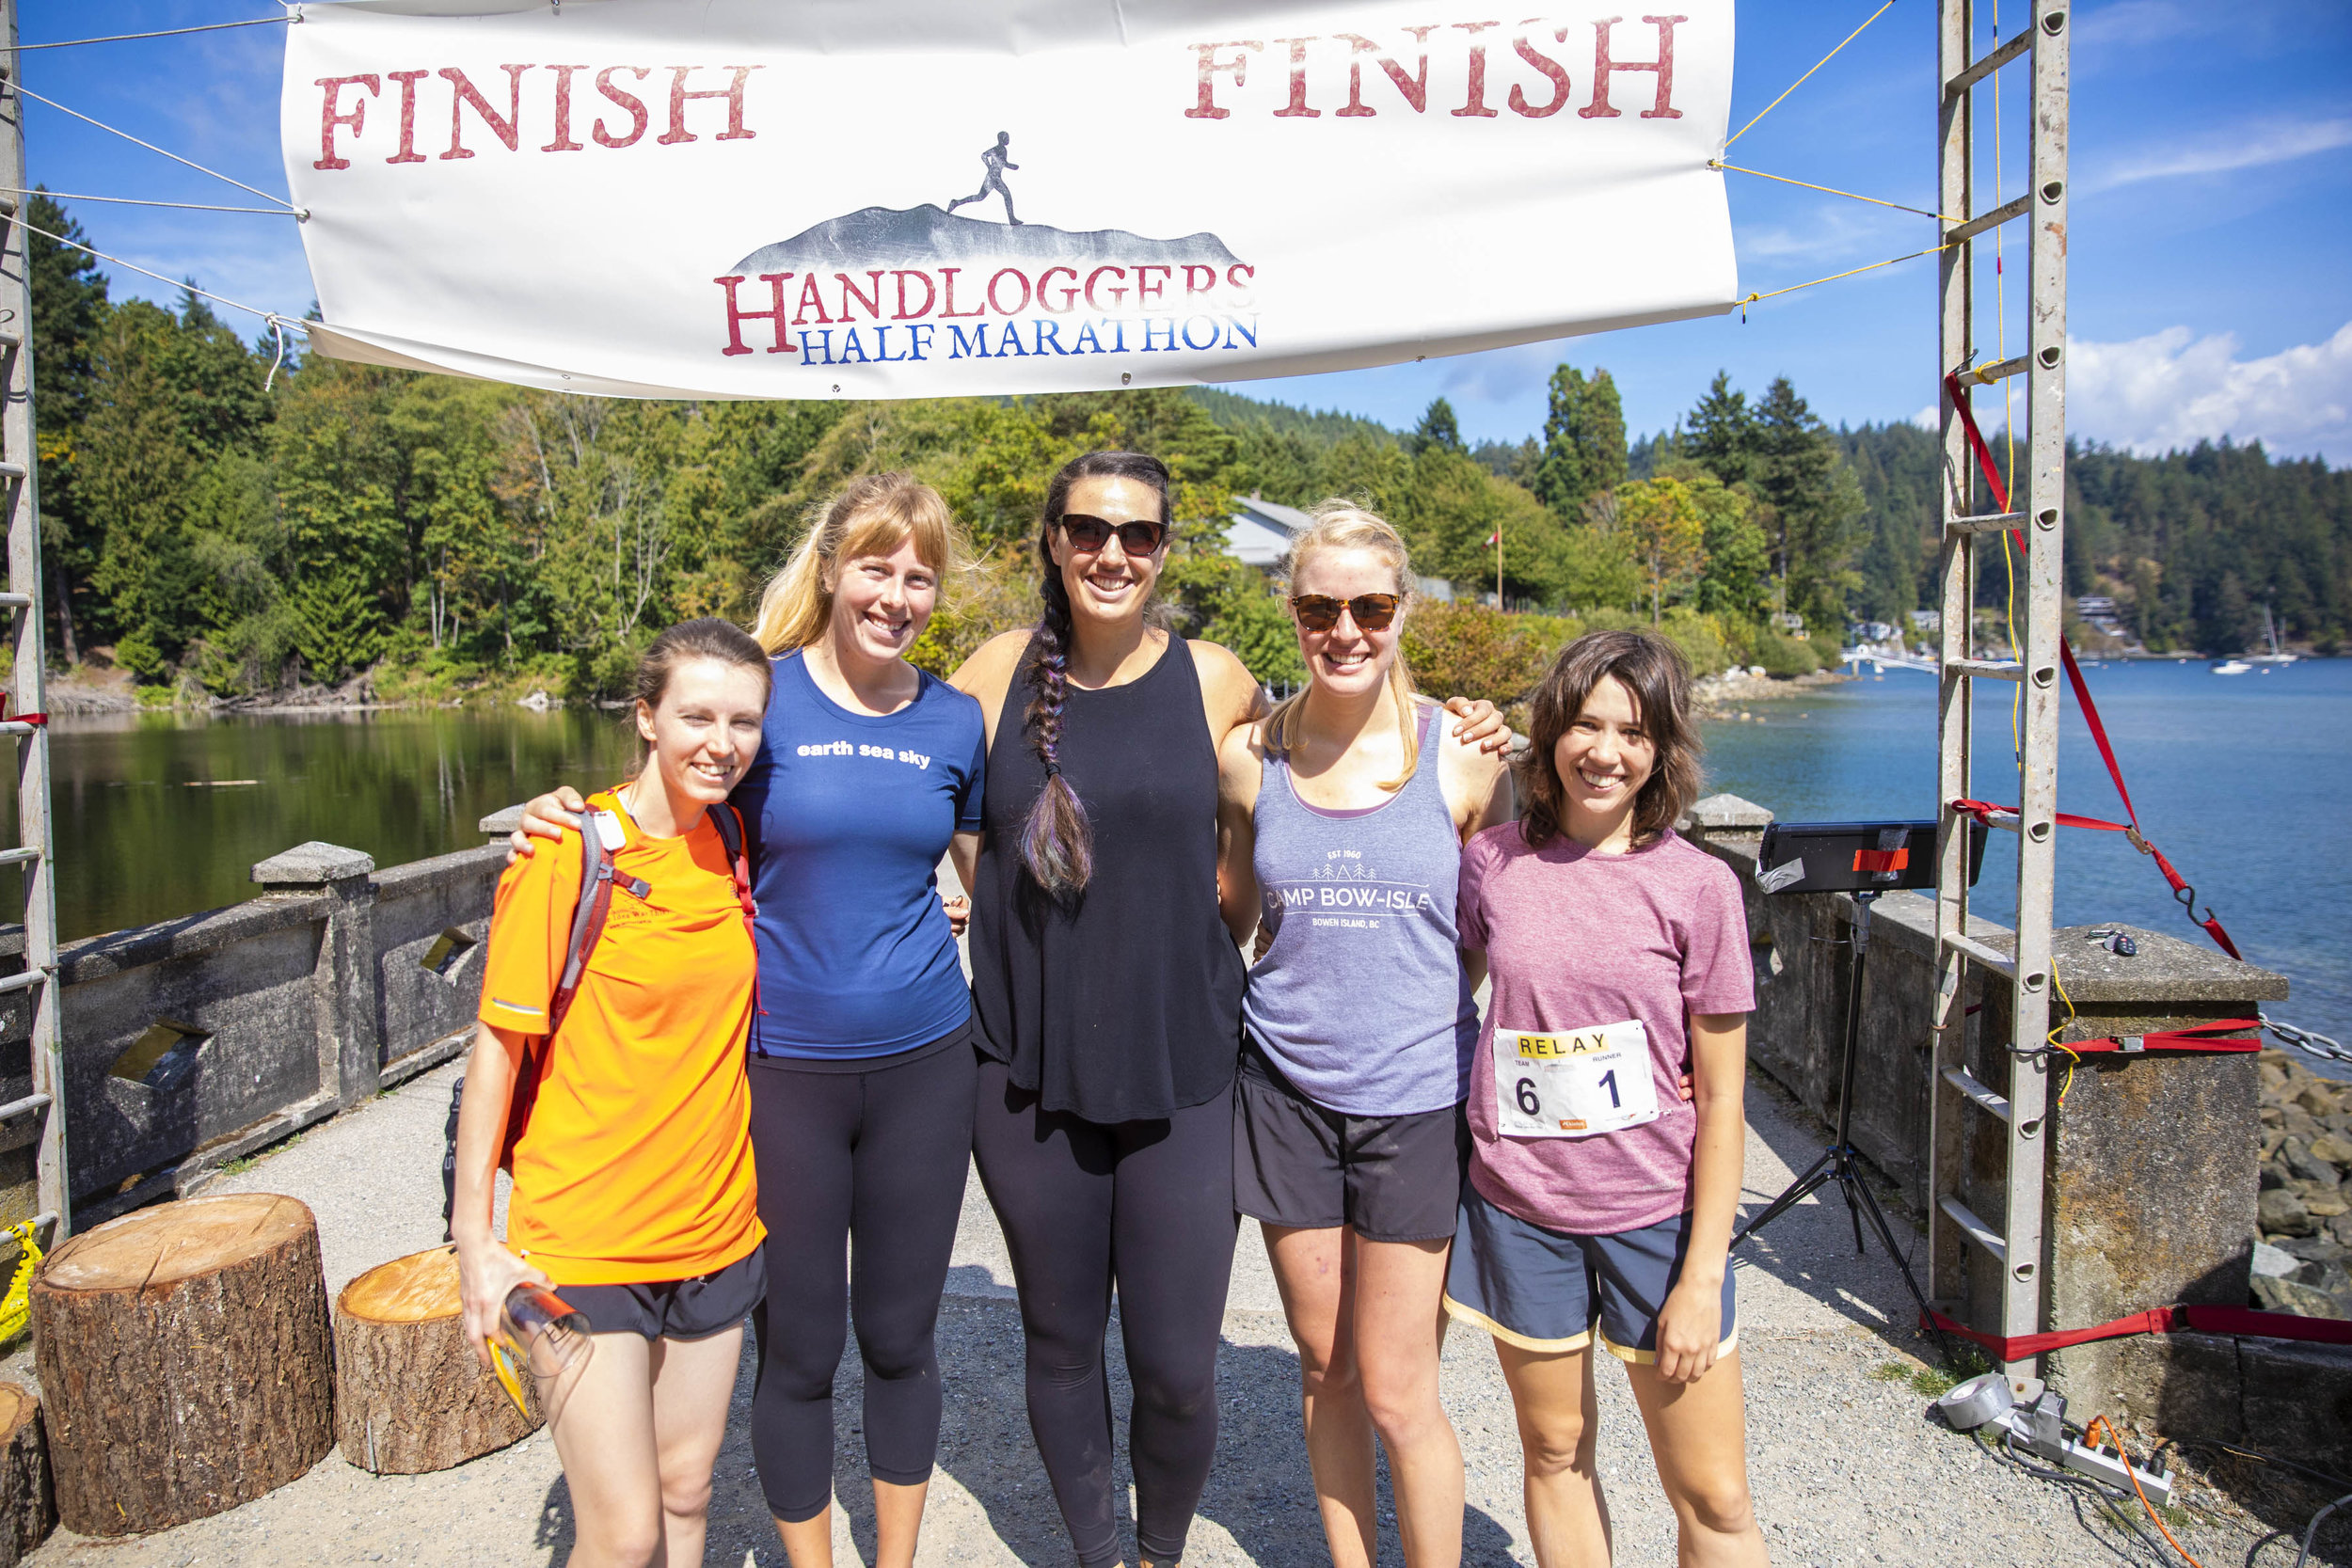 2019 Handloggers Half Marathon and Relay - The sixth annual Handloggers Race takes place on Saturday, August 31, 2019. Registration opens on April 15, 2019! Time to take advantage of early bird entry fees through May 11. Check out the race details or contact us with questions. Thanks to our sponsors and we are truly grateful for the support of our charities.Like us on Facebook to stay up to date on latest race announcements and training opportunities.